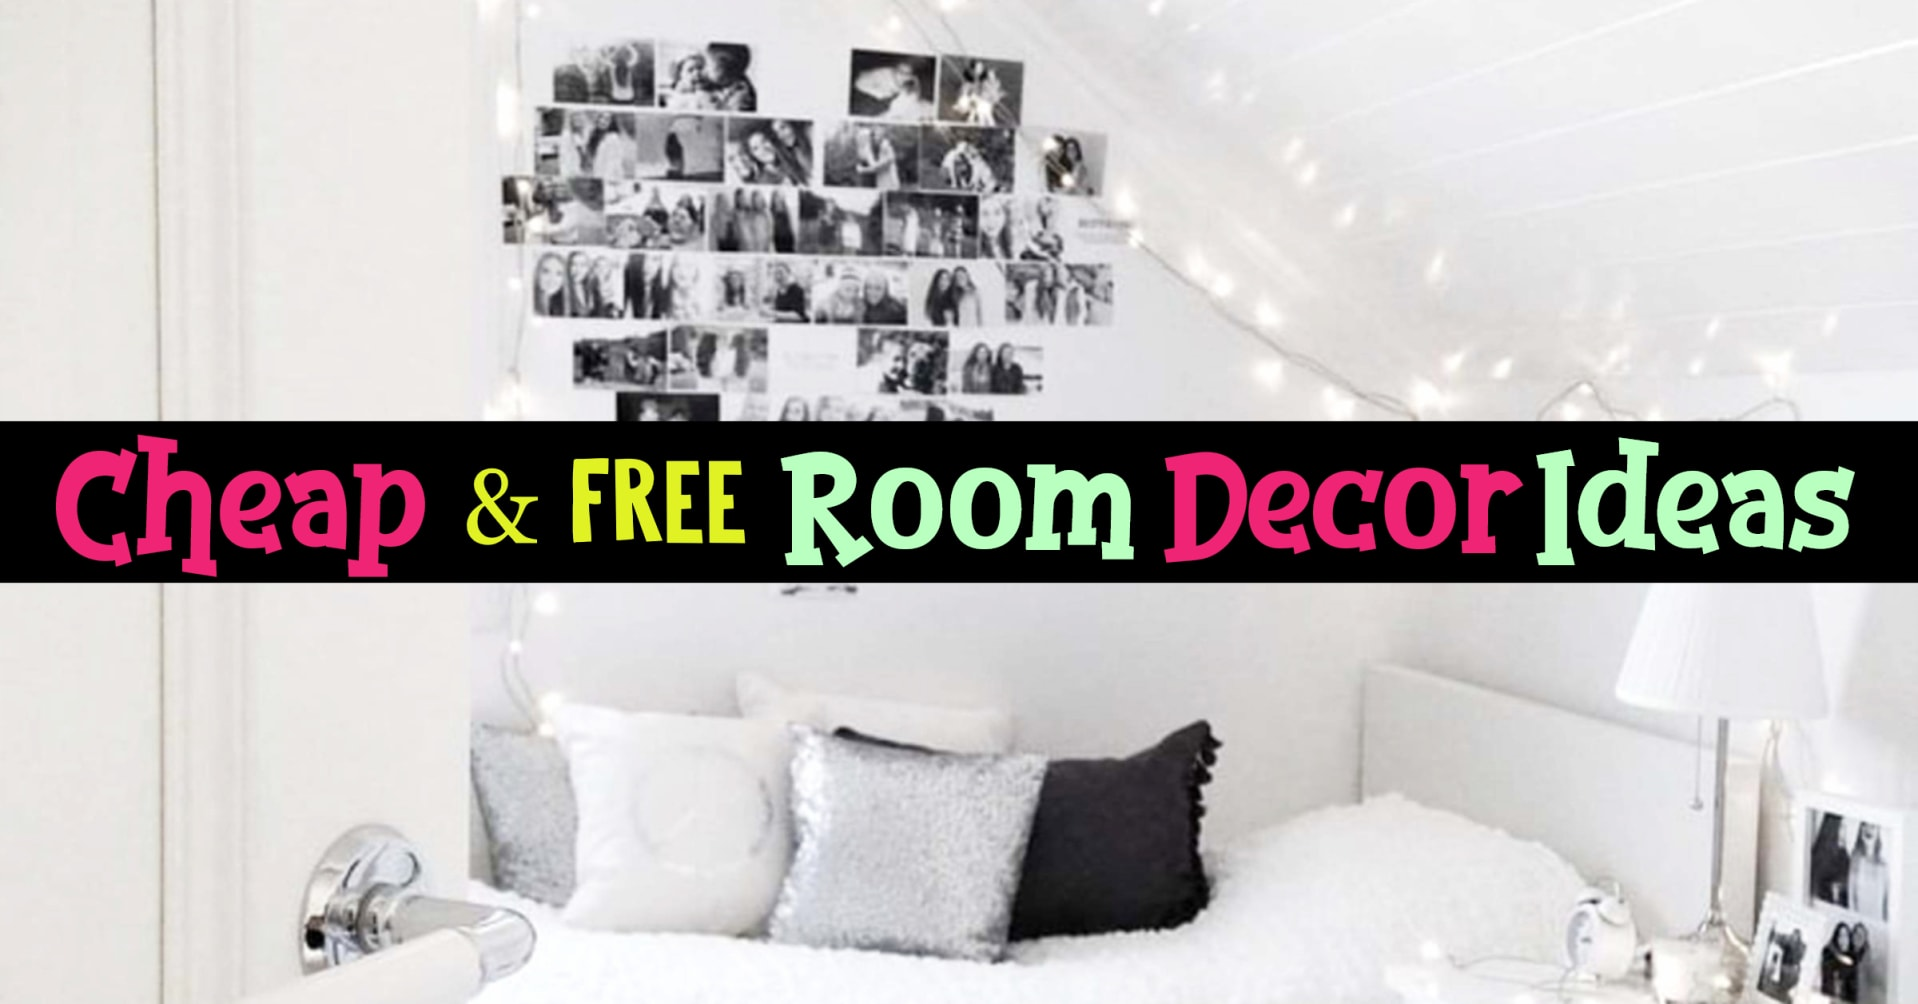 Cheap bedroom decorating ideas - how to decorate your room without spending money - cheap room decor ideas